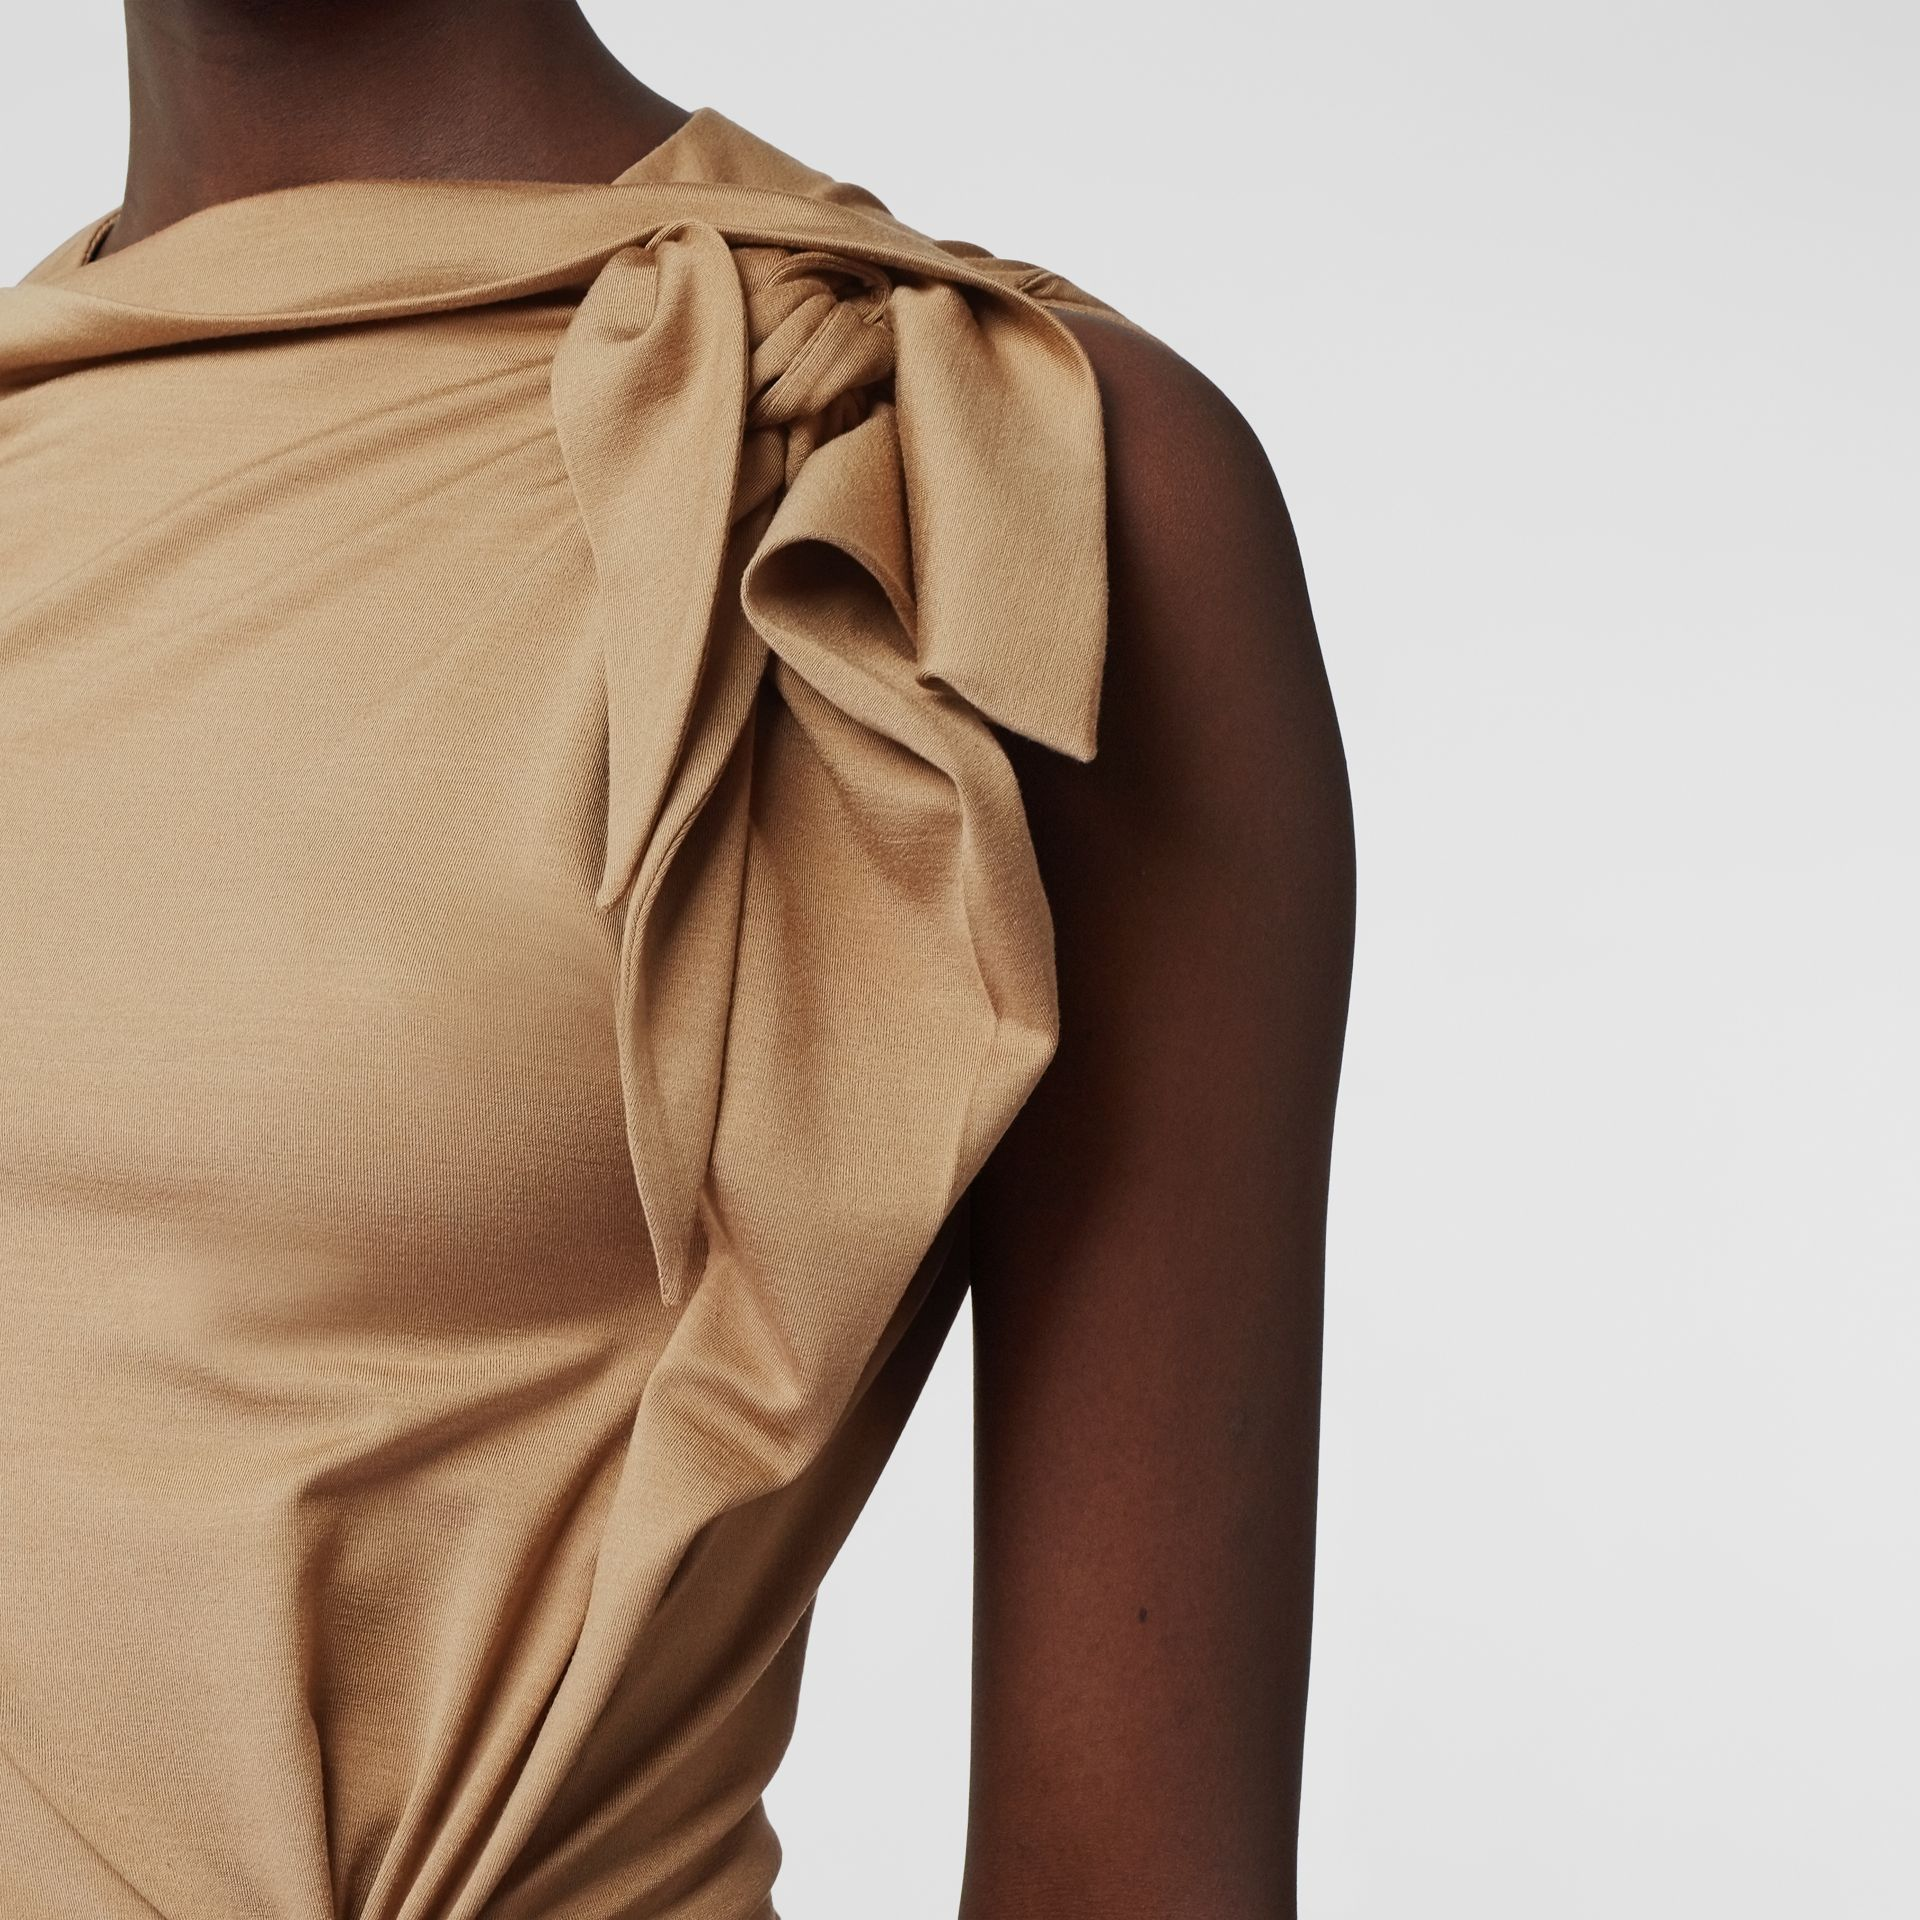 Tie Detail Tri-tone Silk Jersey Dress in Wheat - Women | Burberry United States - gallery image 4